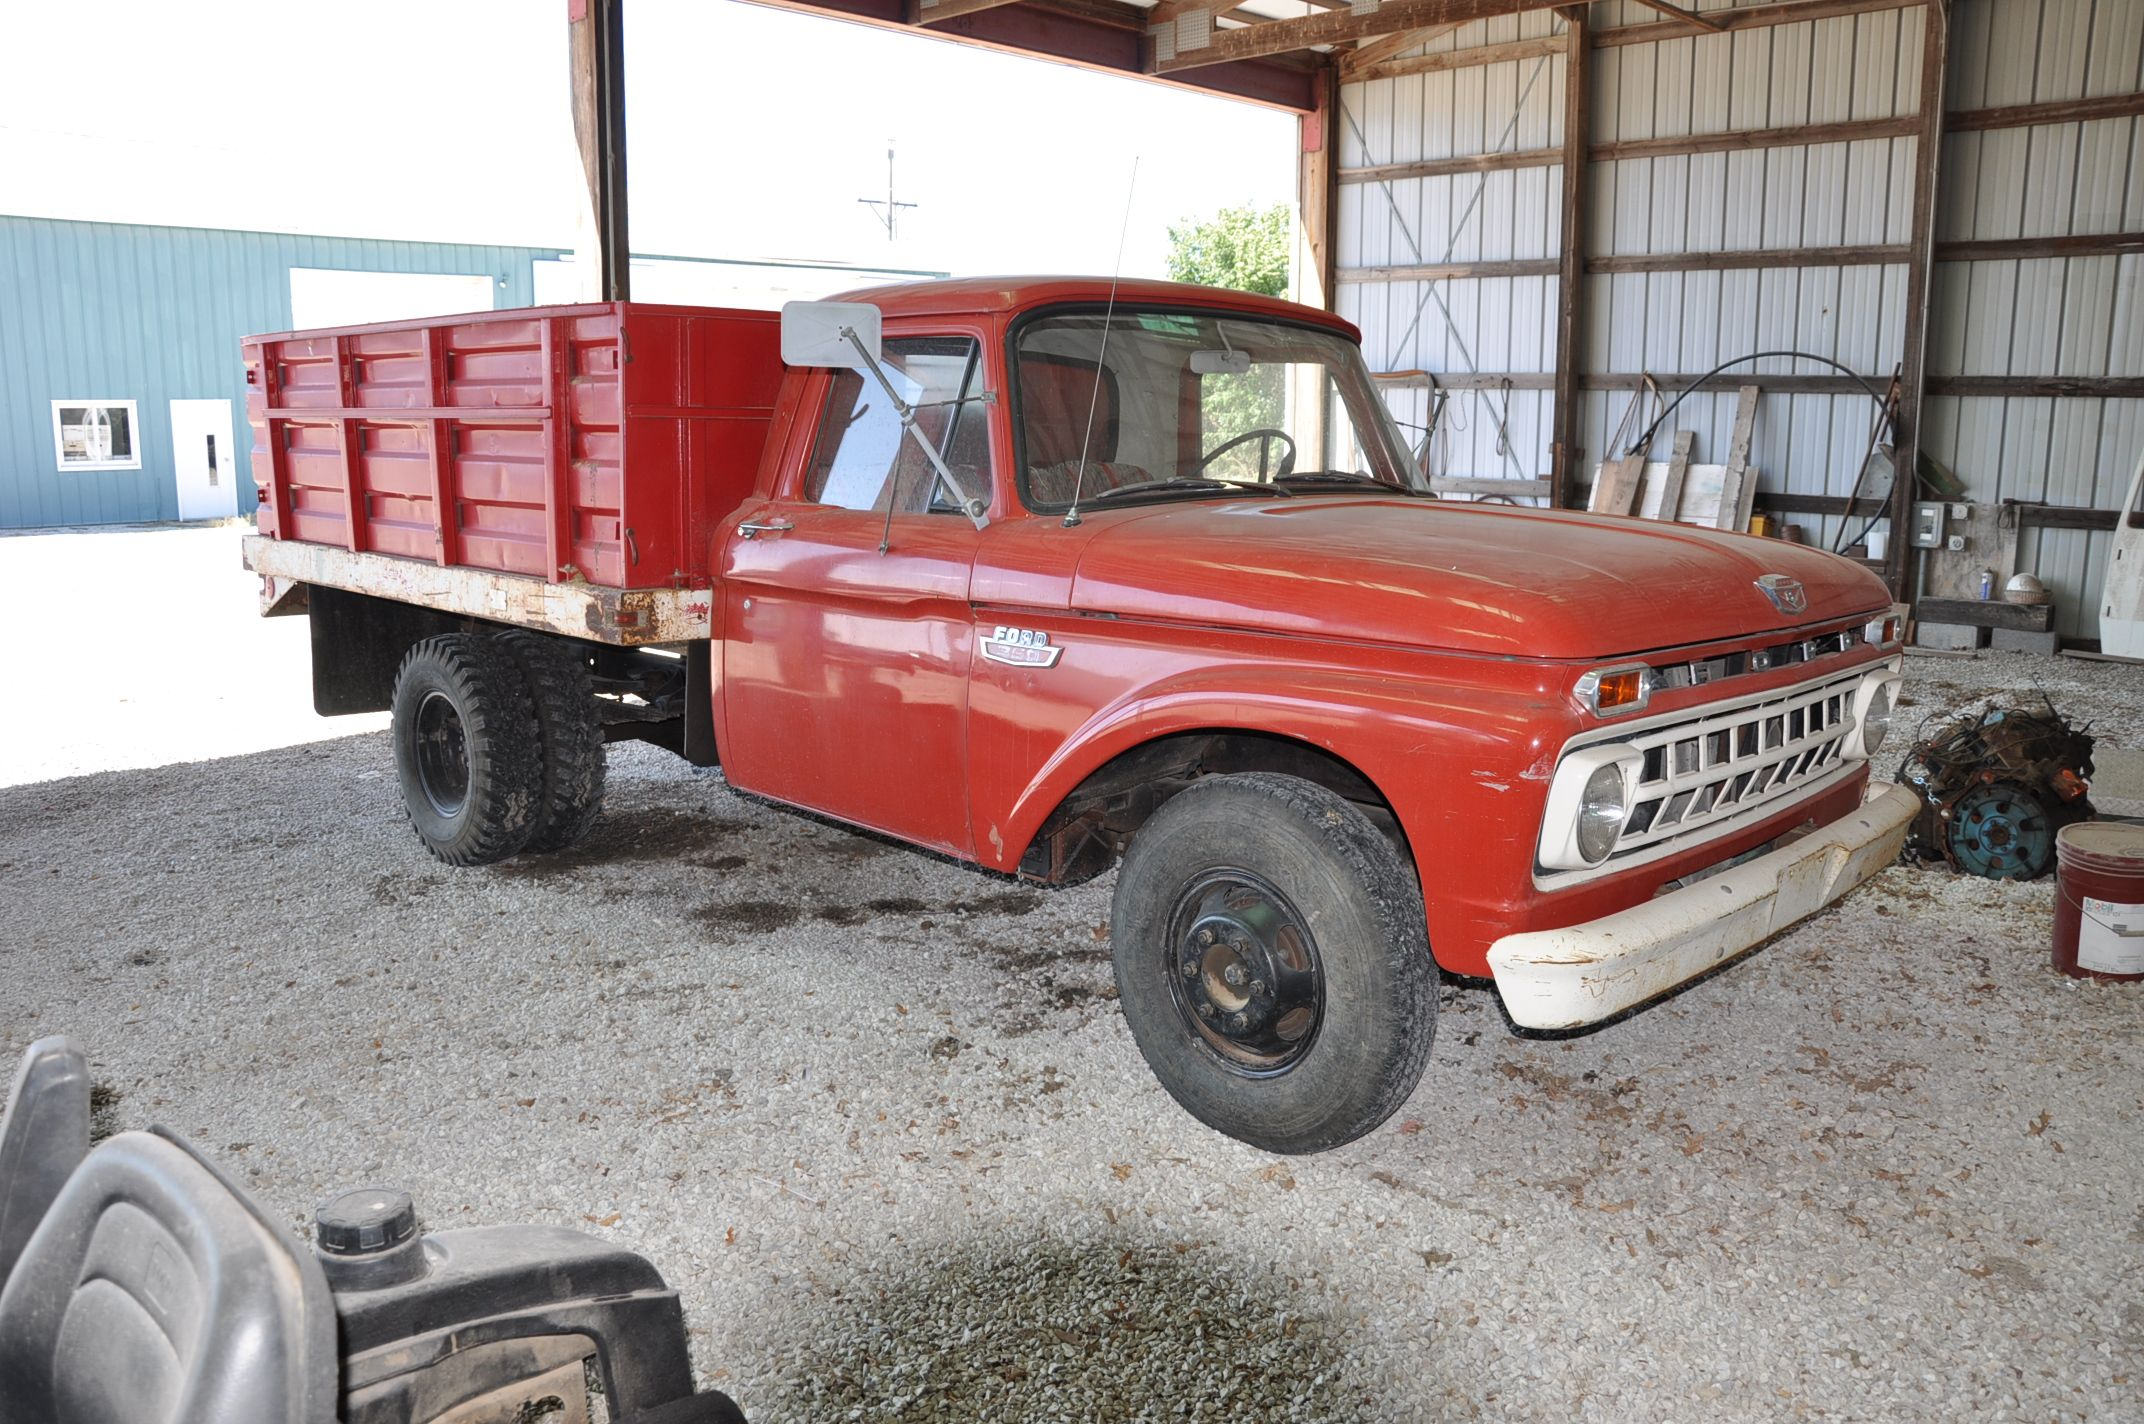 For sale 1964 ford f350 flatbed truck 7995 00 at www motorn com